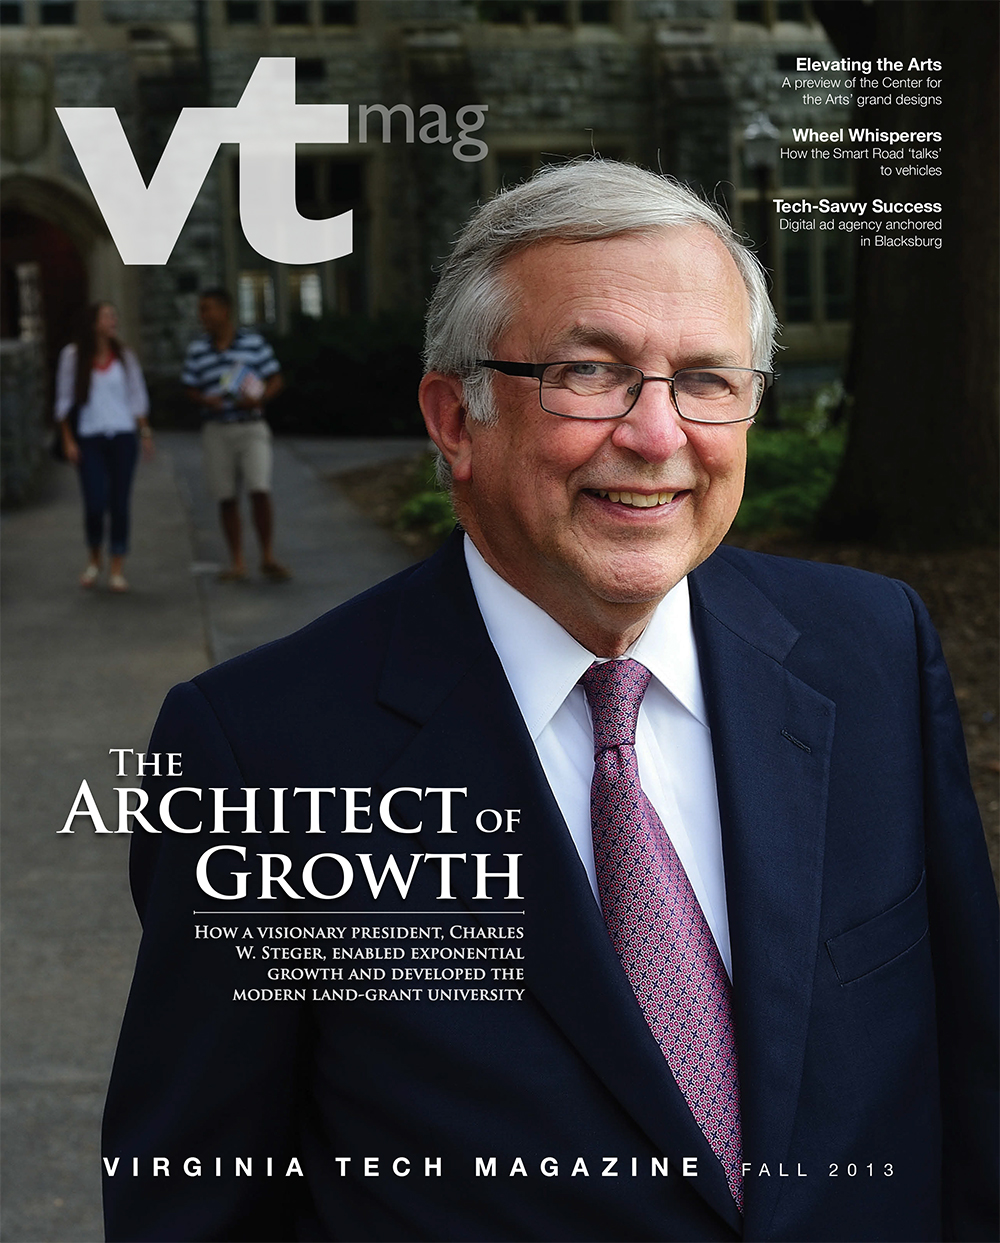 Virginia Tech Magazine fall 2013 cover